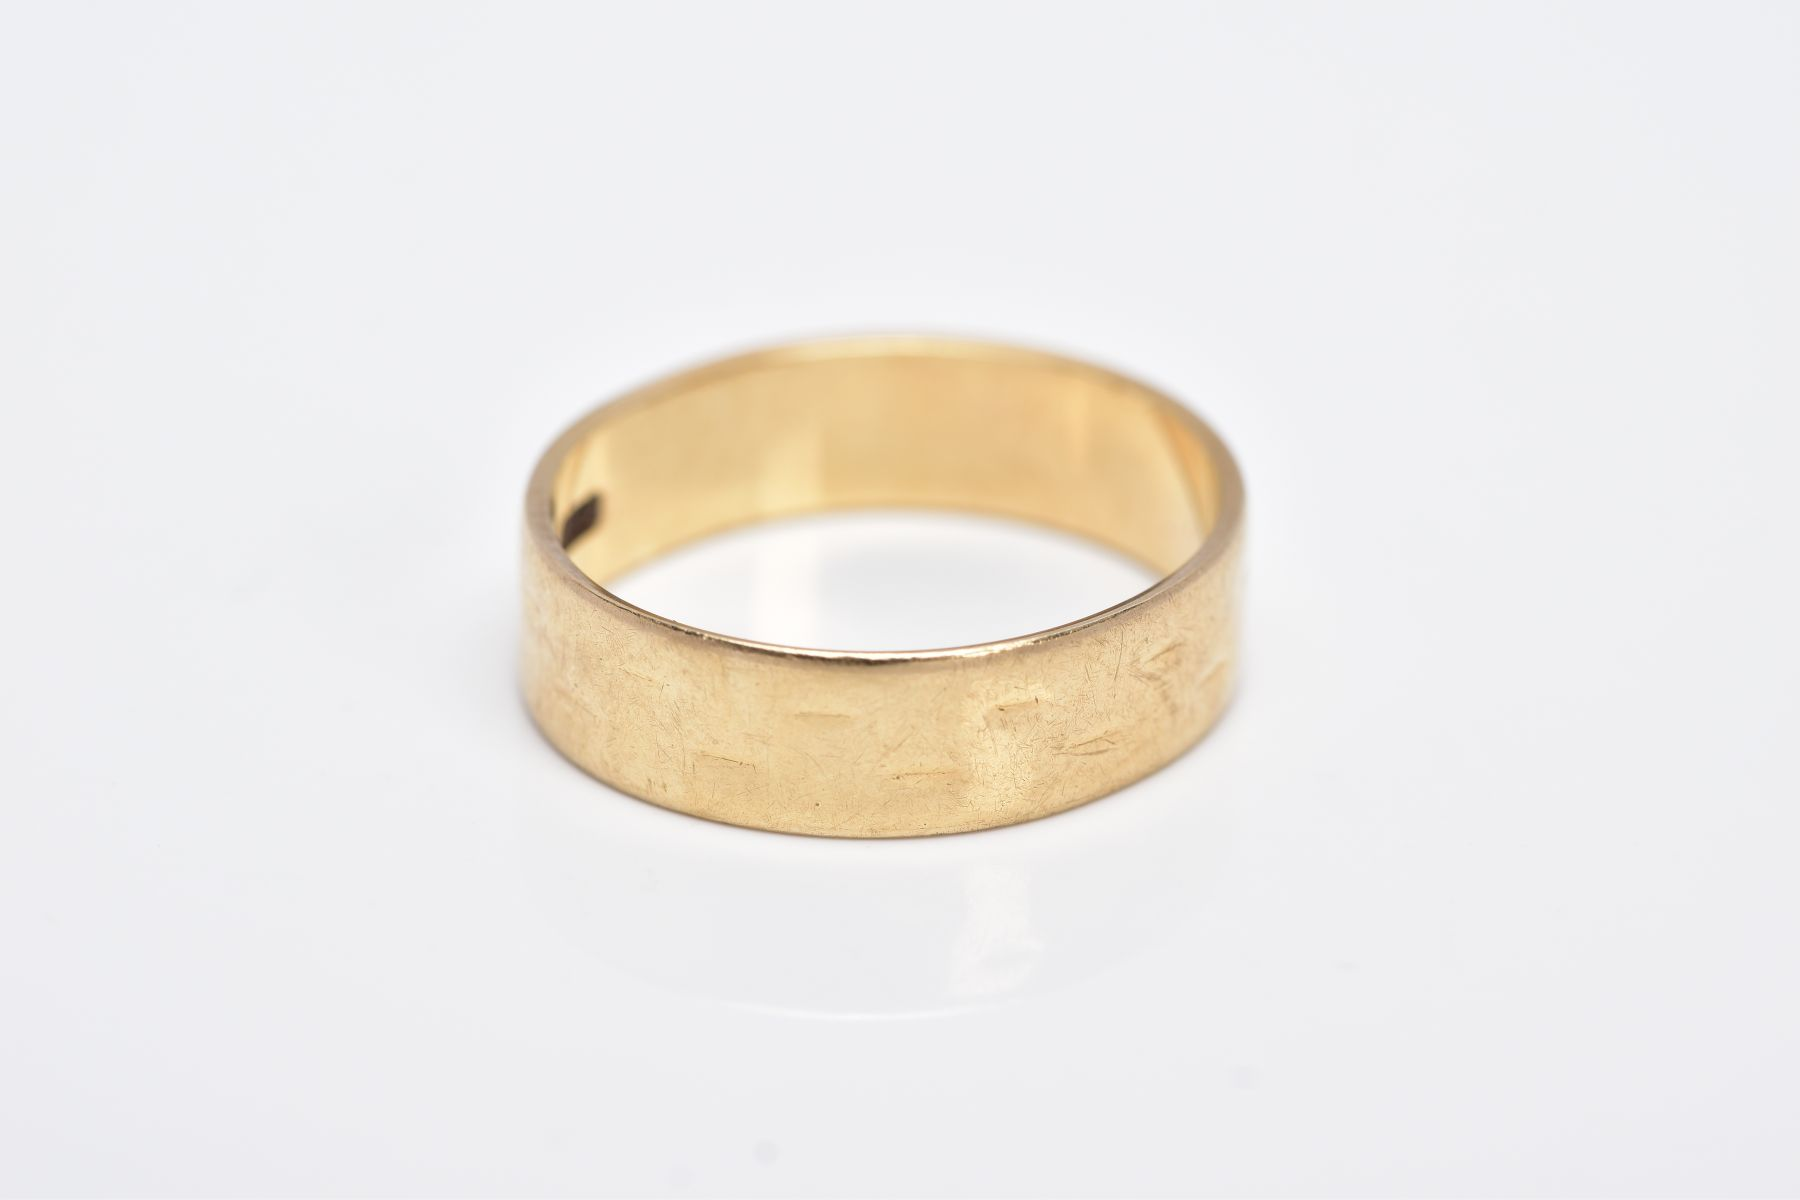 A 9CT GOLD WIDE BAND, slight textured effect, approximate width 5.5mm, hallmarked 9ct gold London, - Image 2 of 2